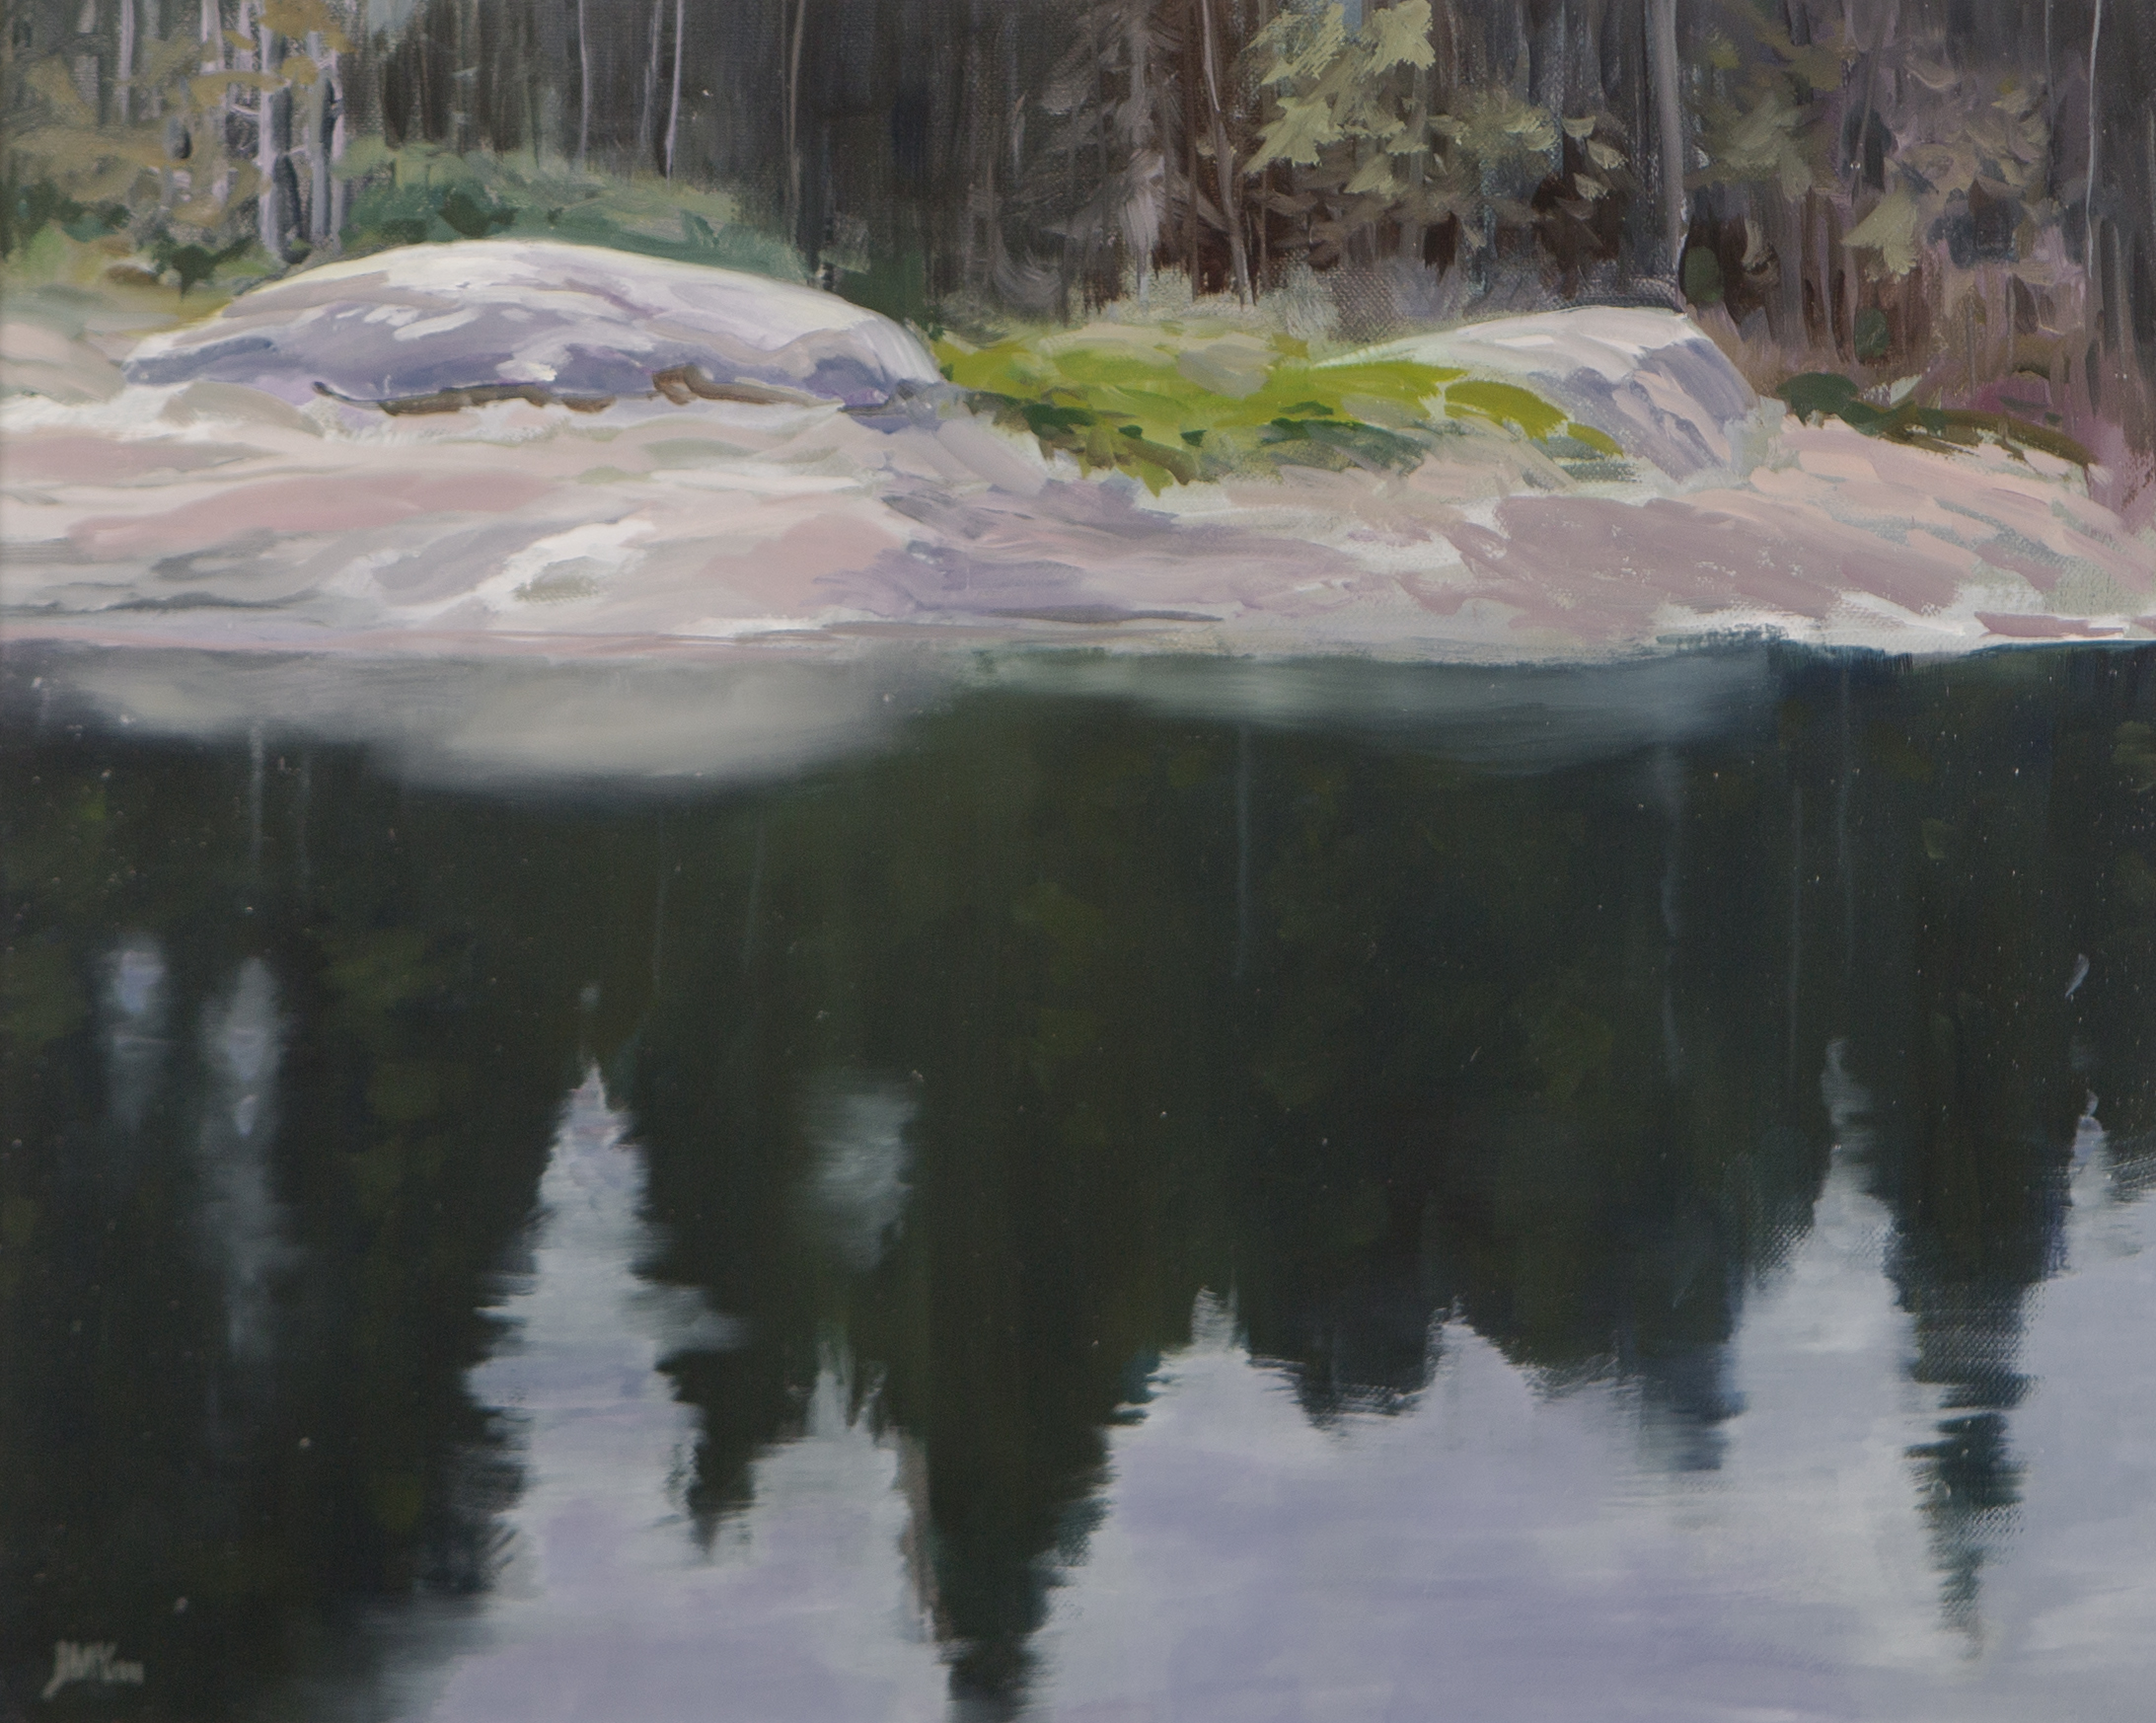 Pond in April, Algonquin